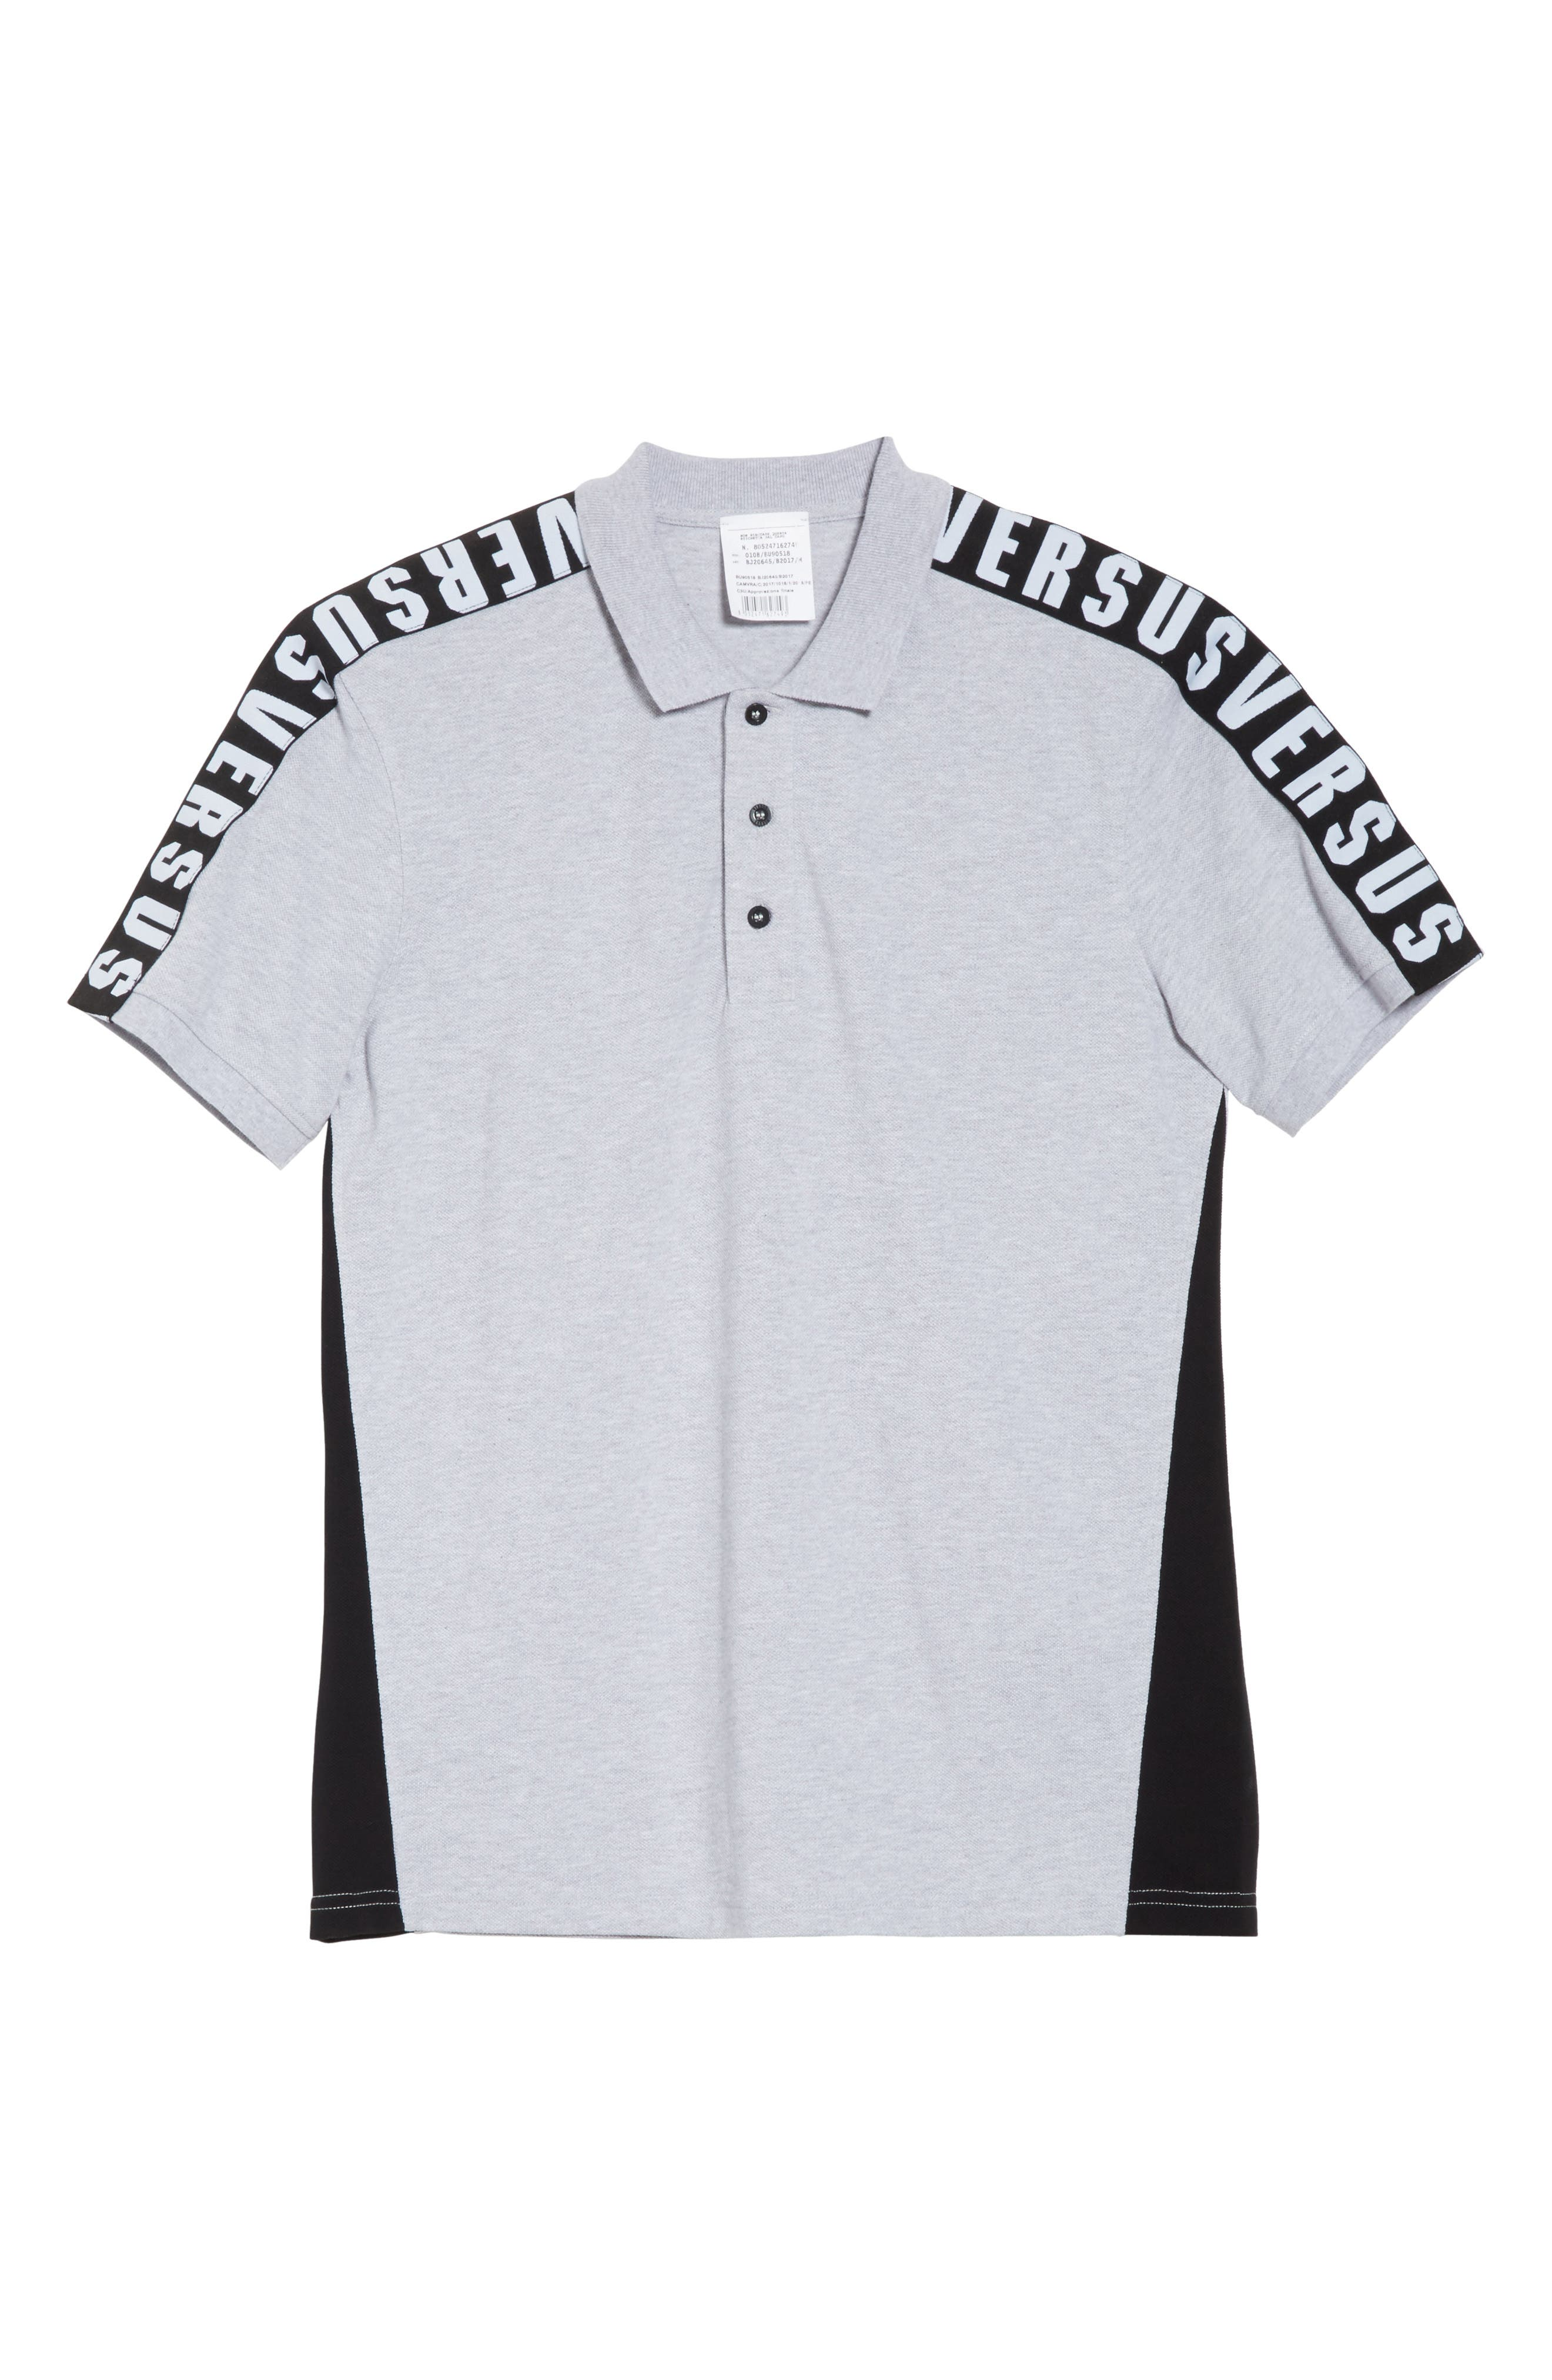 VERSUS by Versace Shoulder Tape Piqué Polo,                             Alternate thumbnail 6, color,                             017